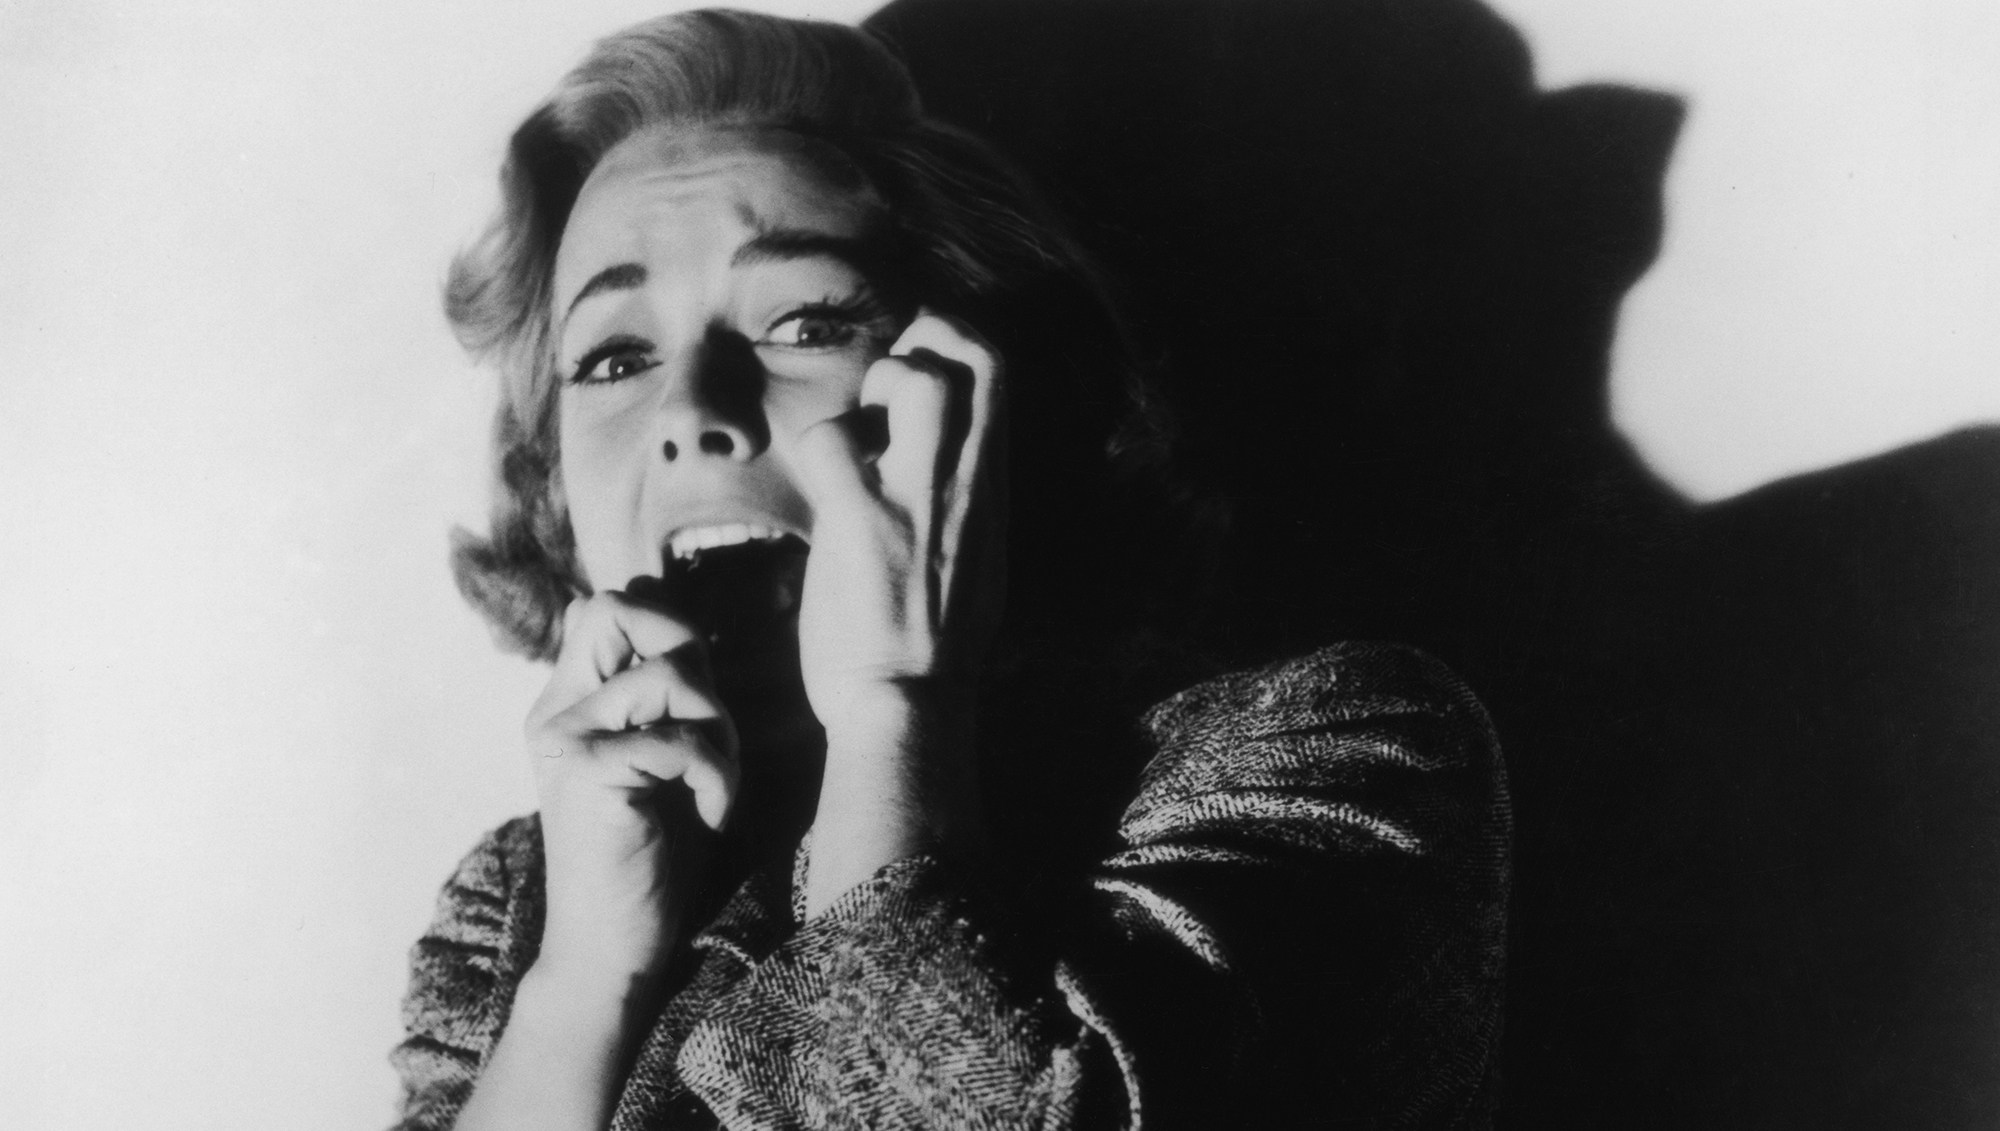 'Psycho,' 'Friday the 13th' and More Slasher Flicks to Binge Over Halloween — Watch!